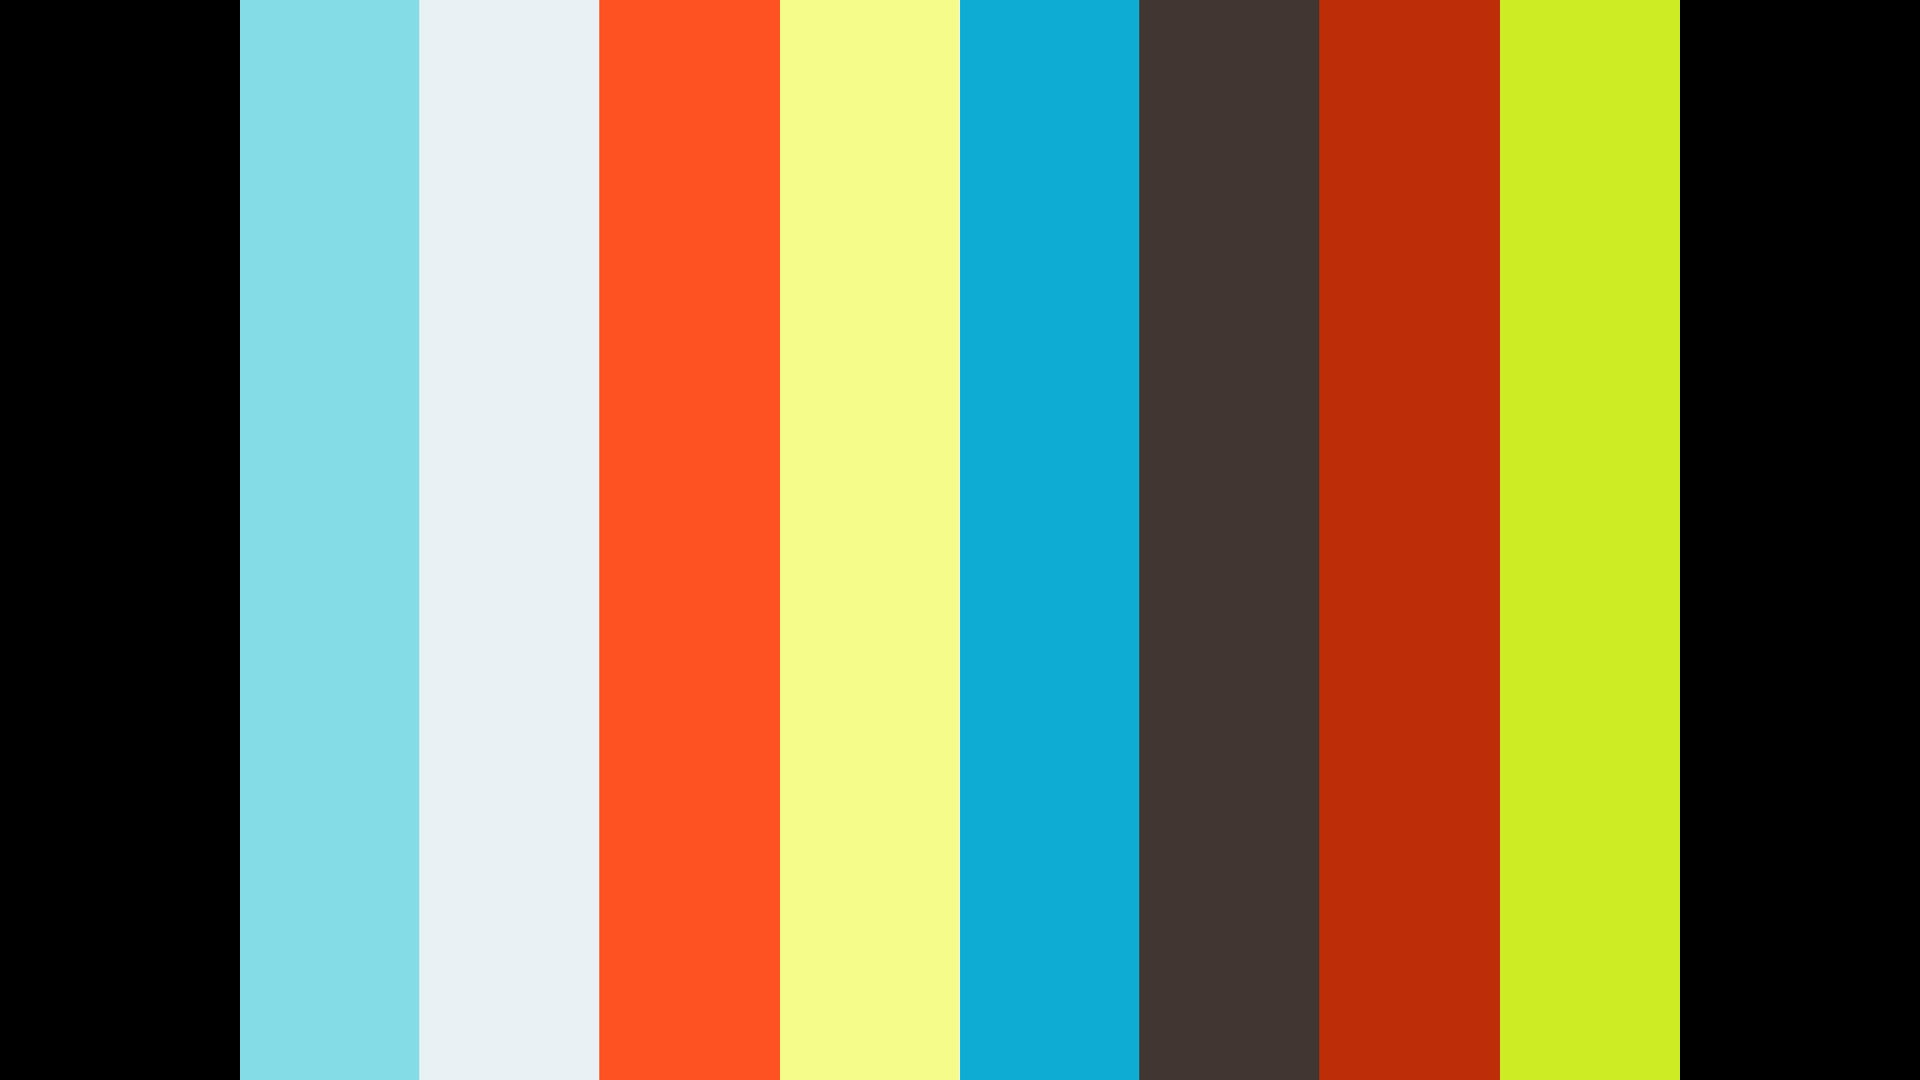 OVS x We Care 2019